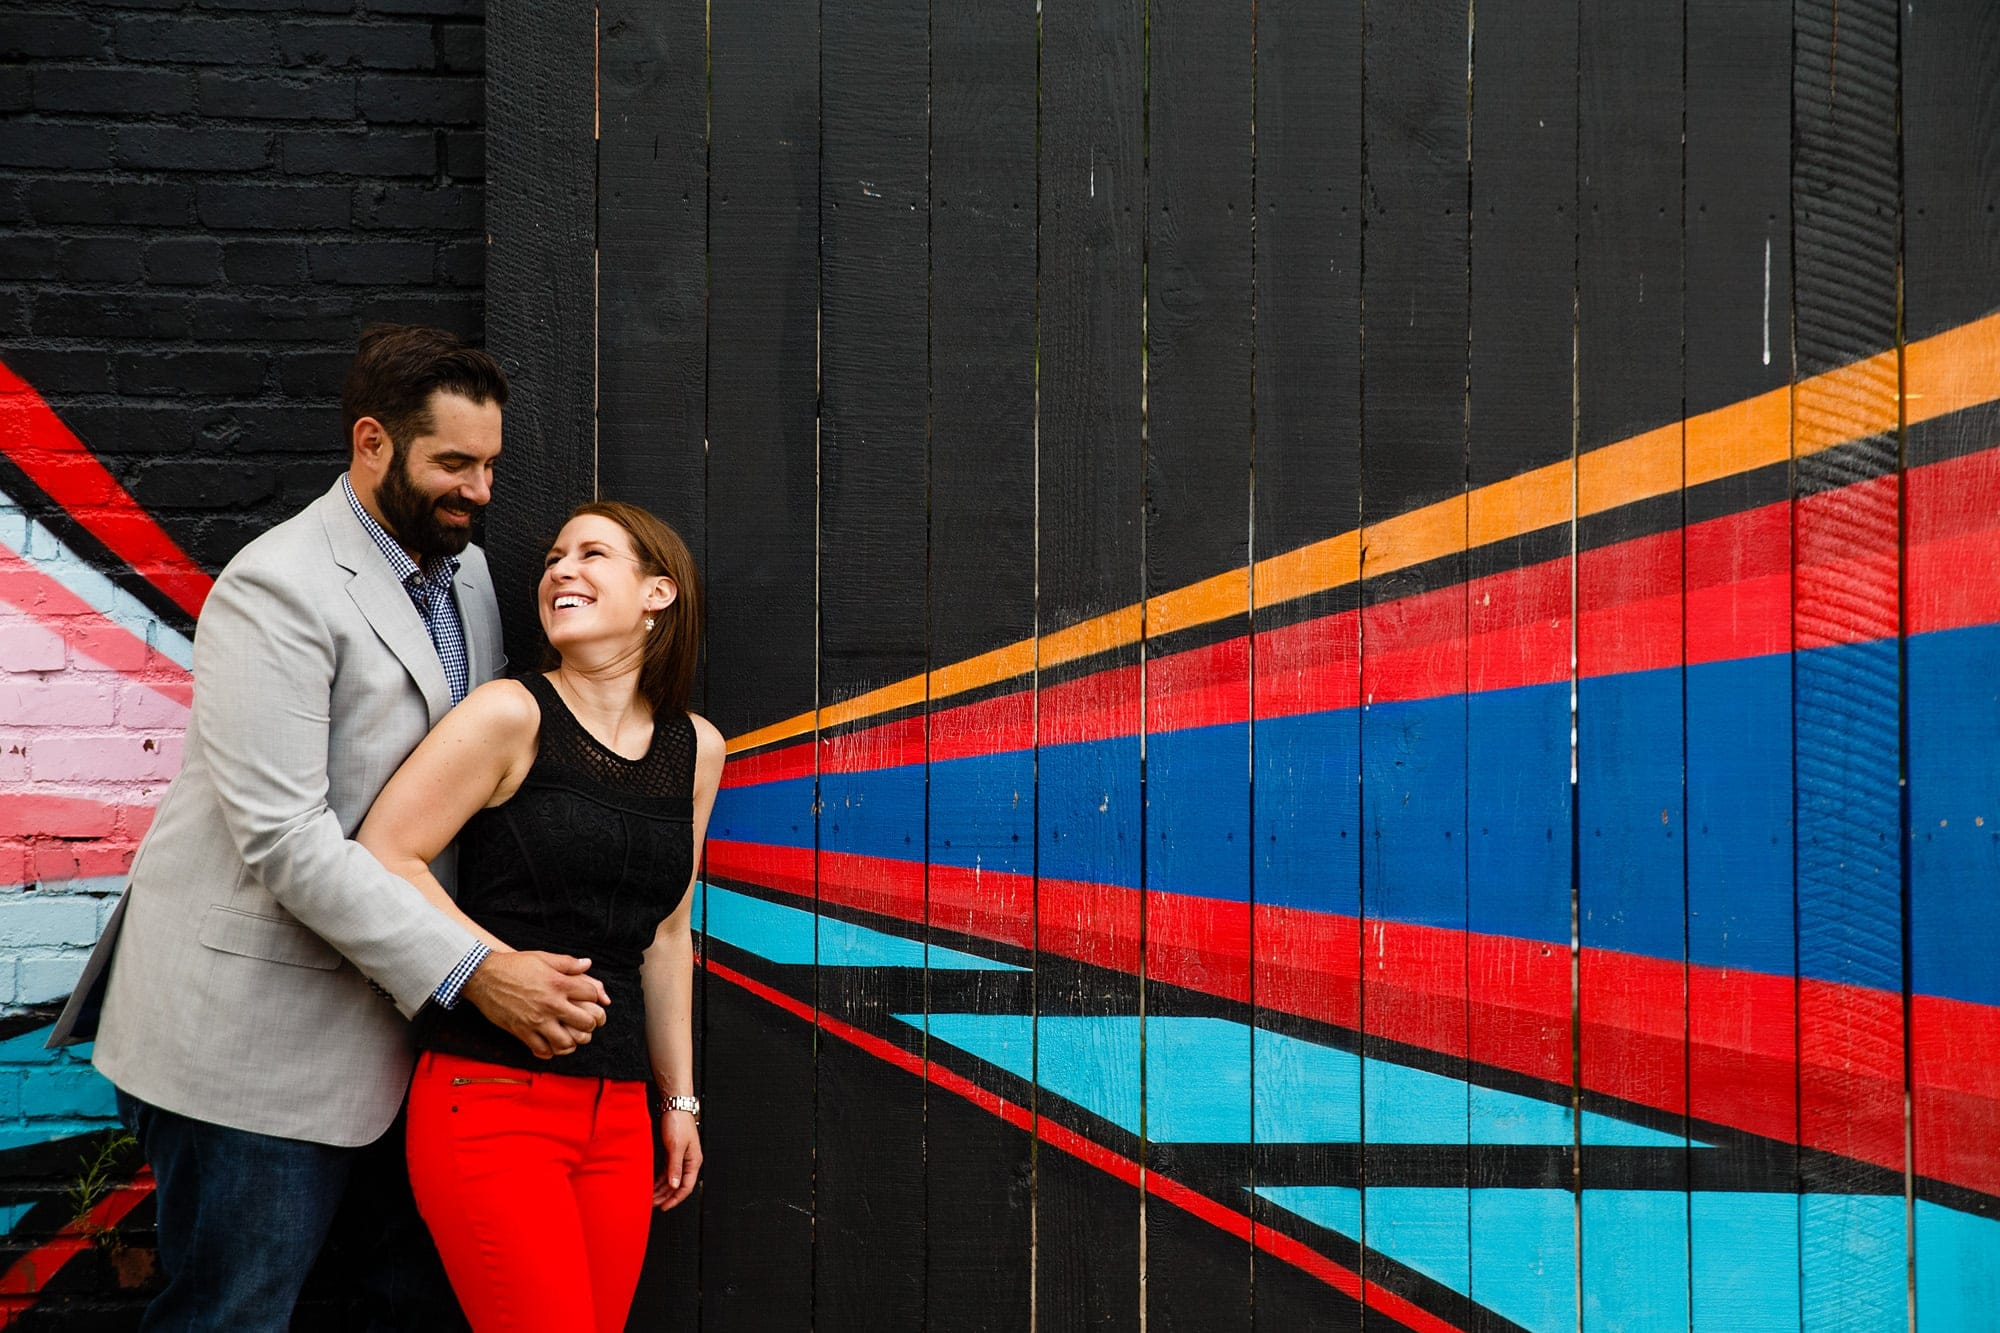 A couple have fun together along a painted grafiti wall on Larimer Street in Denver for their engagment